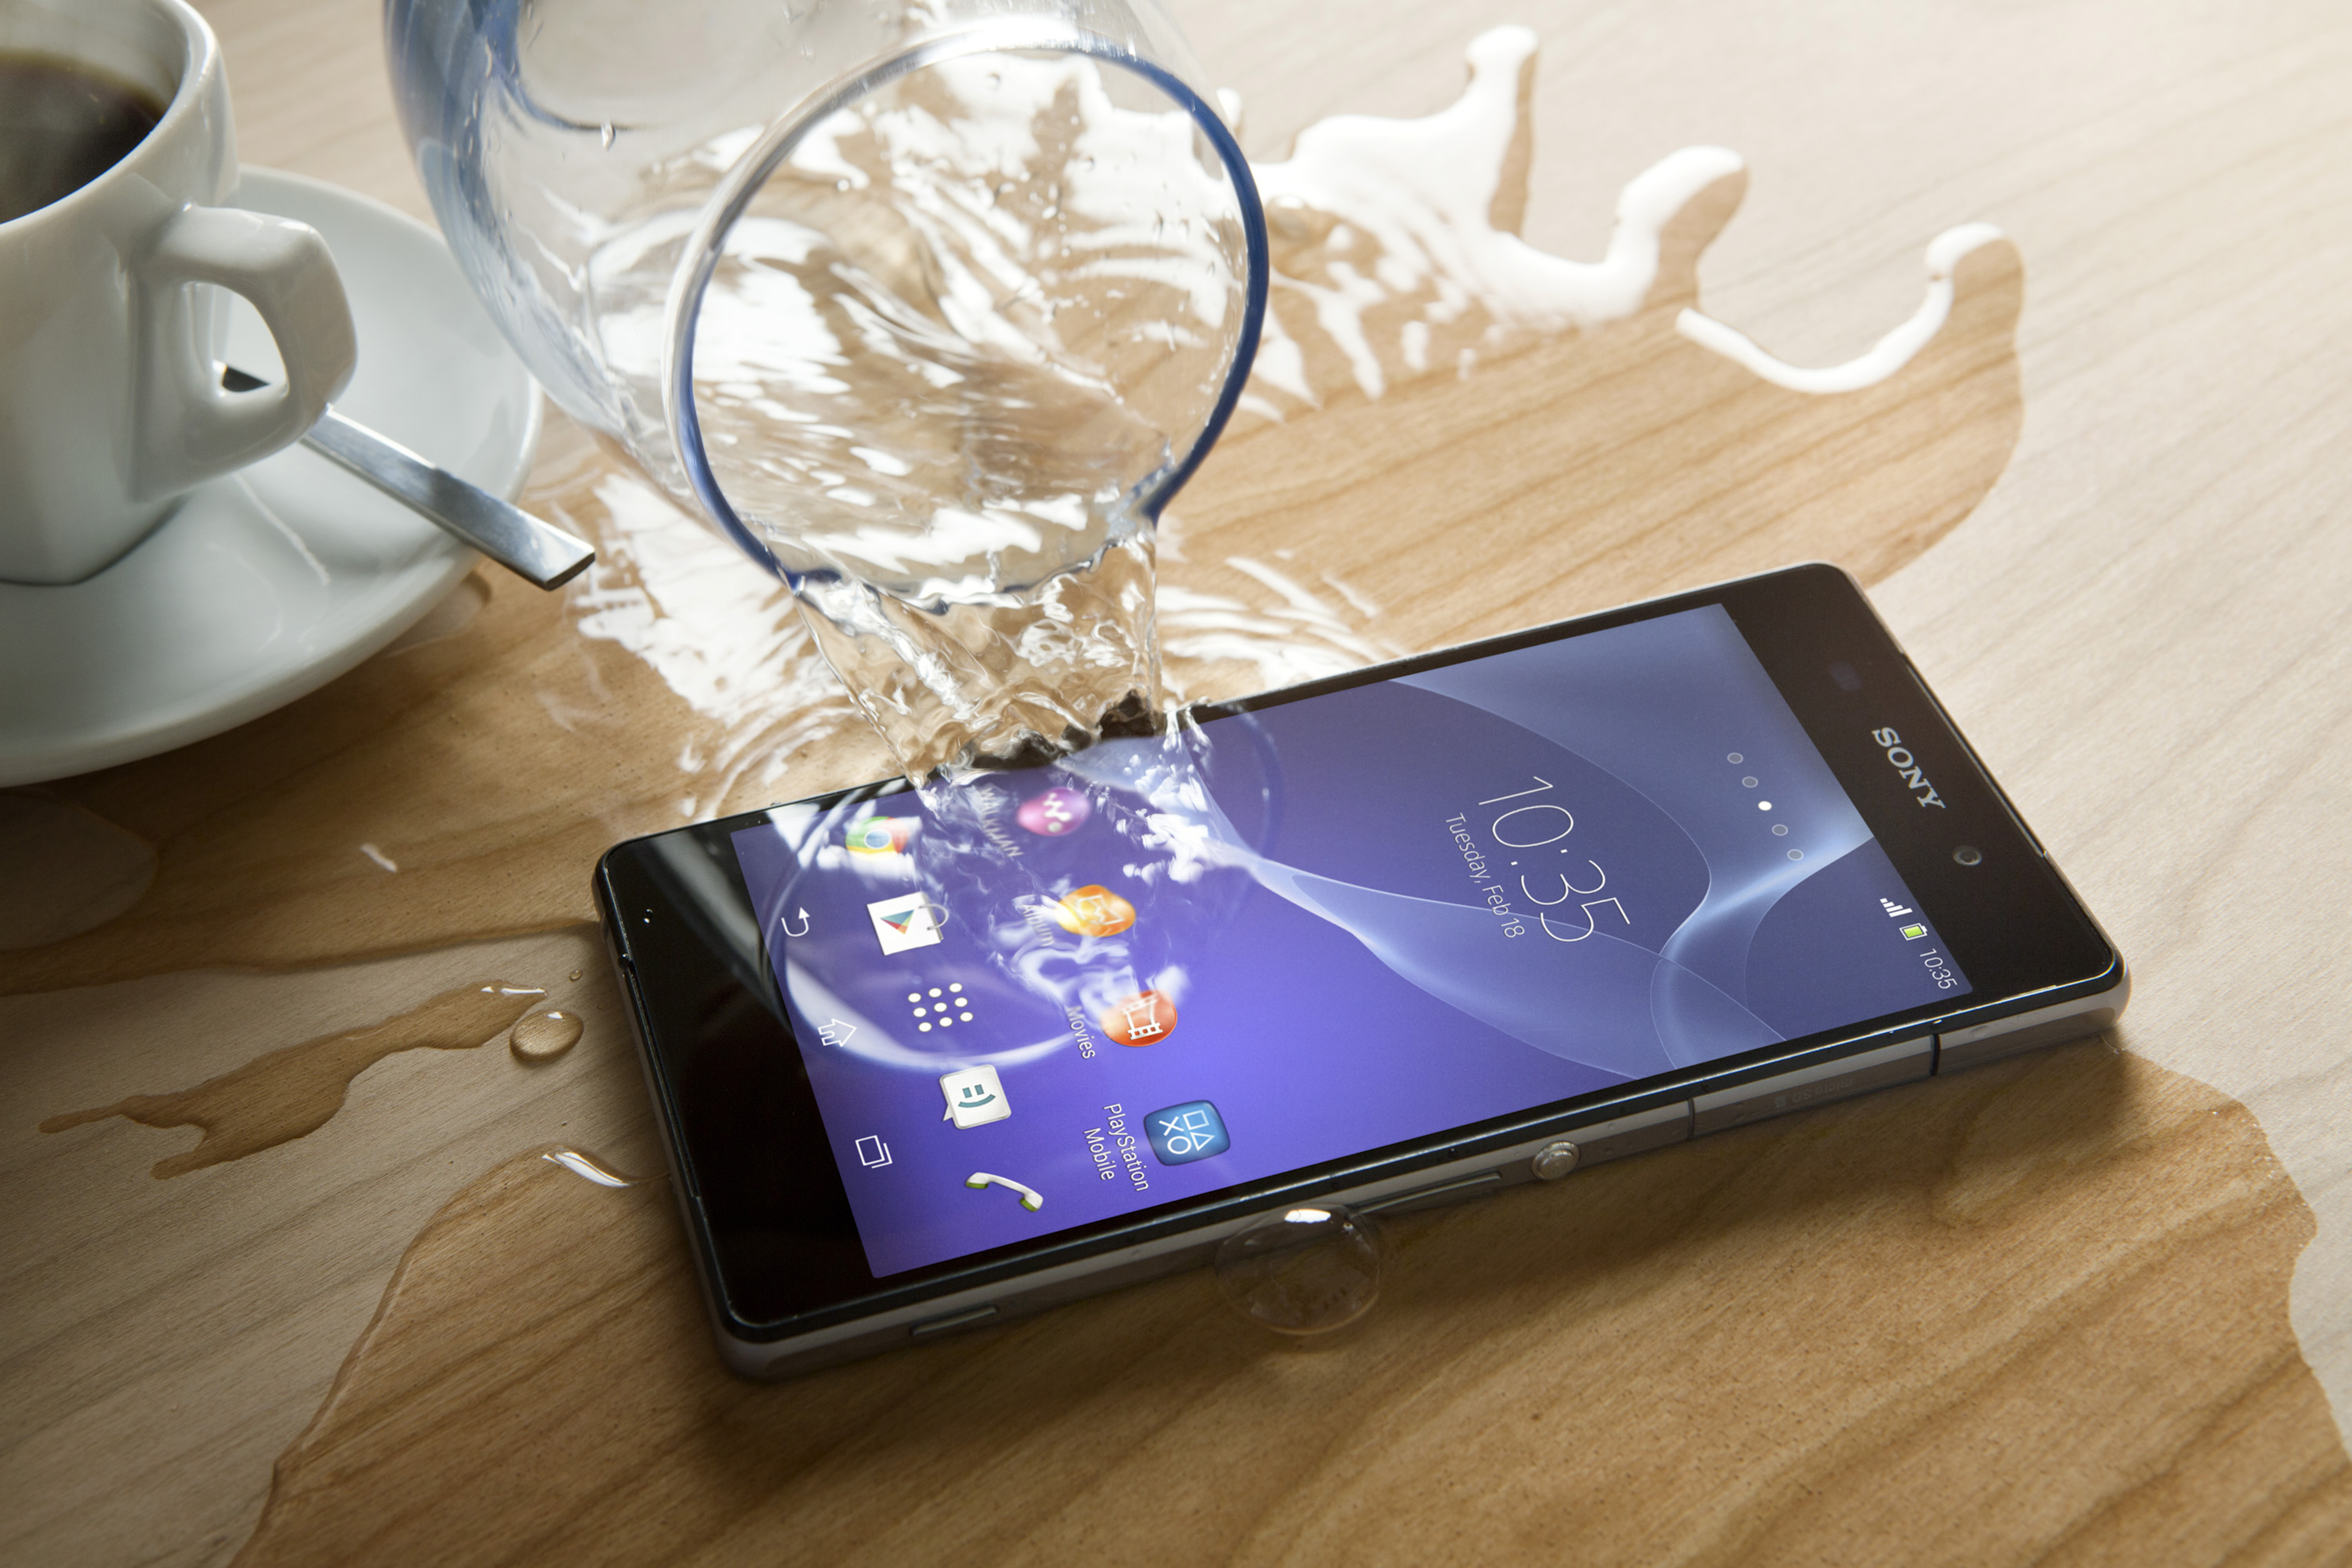 Sony Xperia Z2 Now Available In the US For $699.99